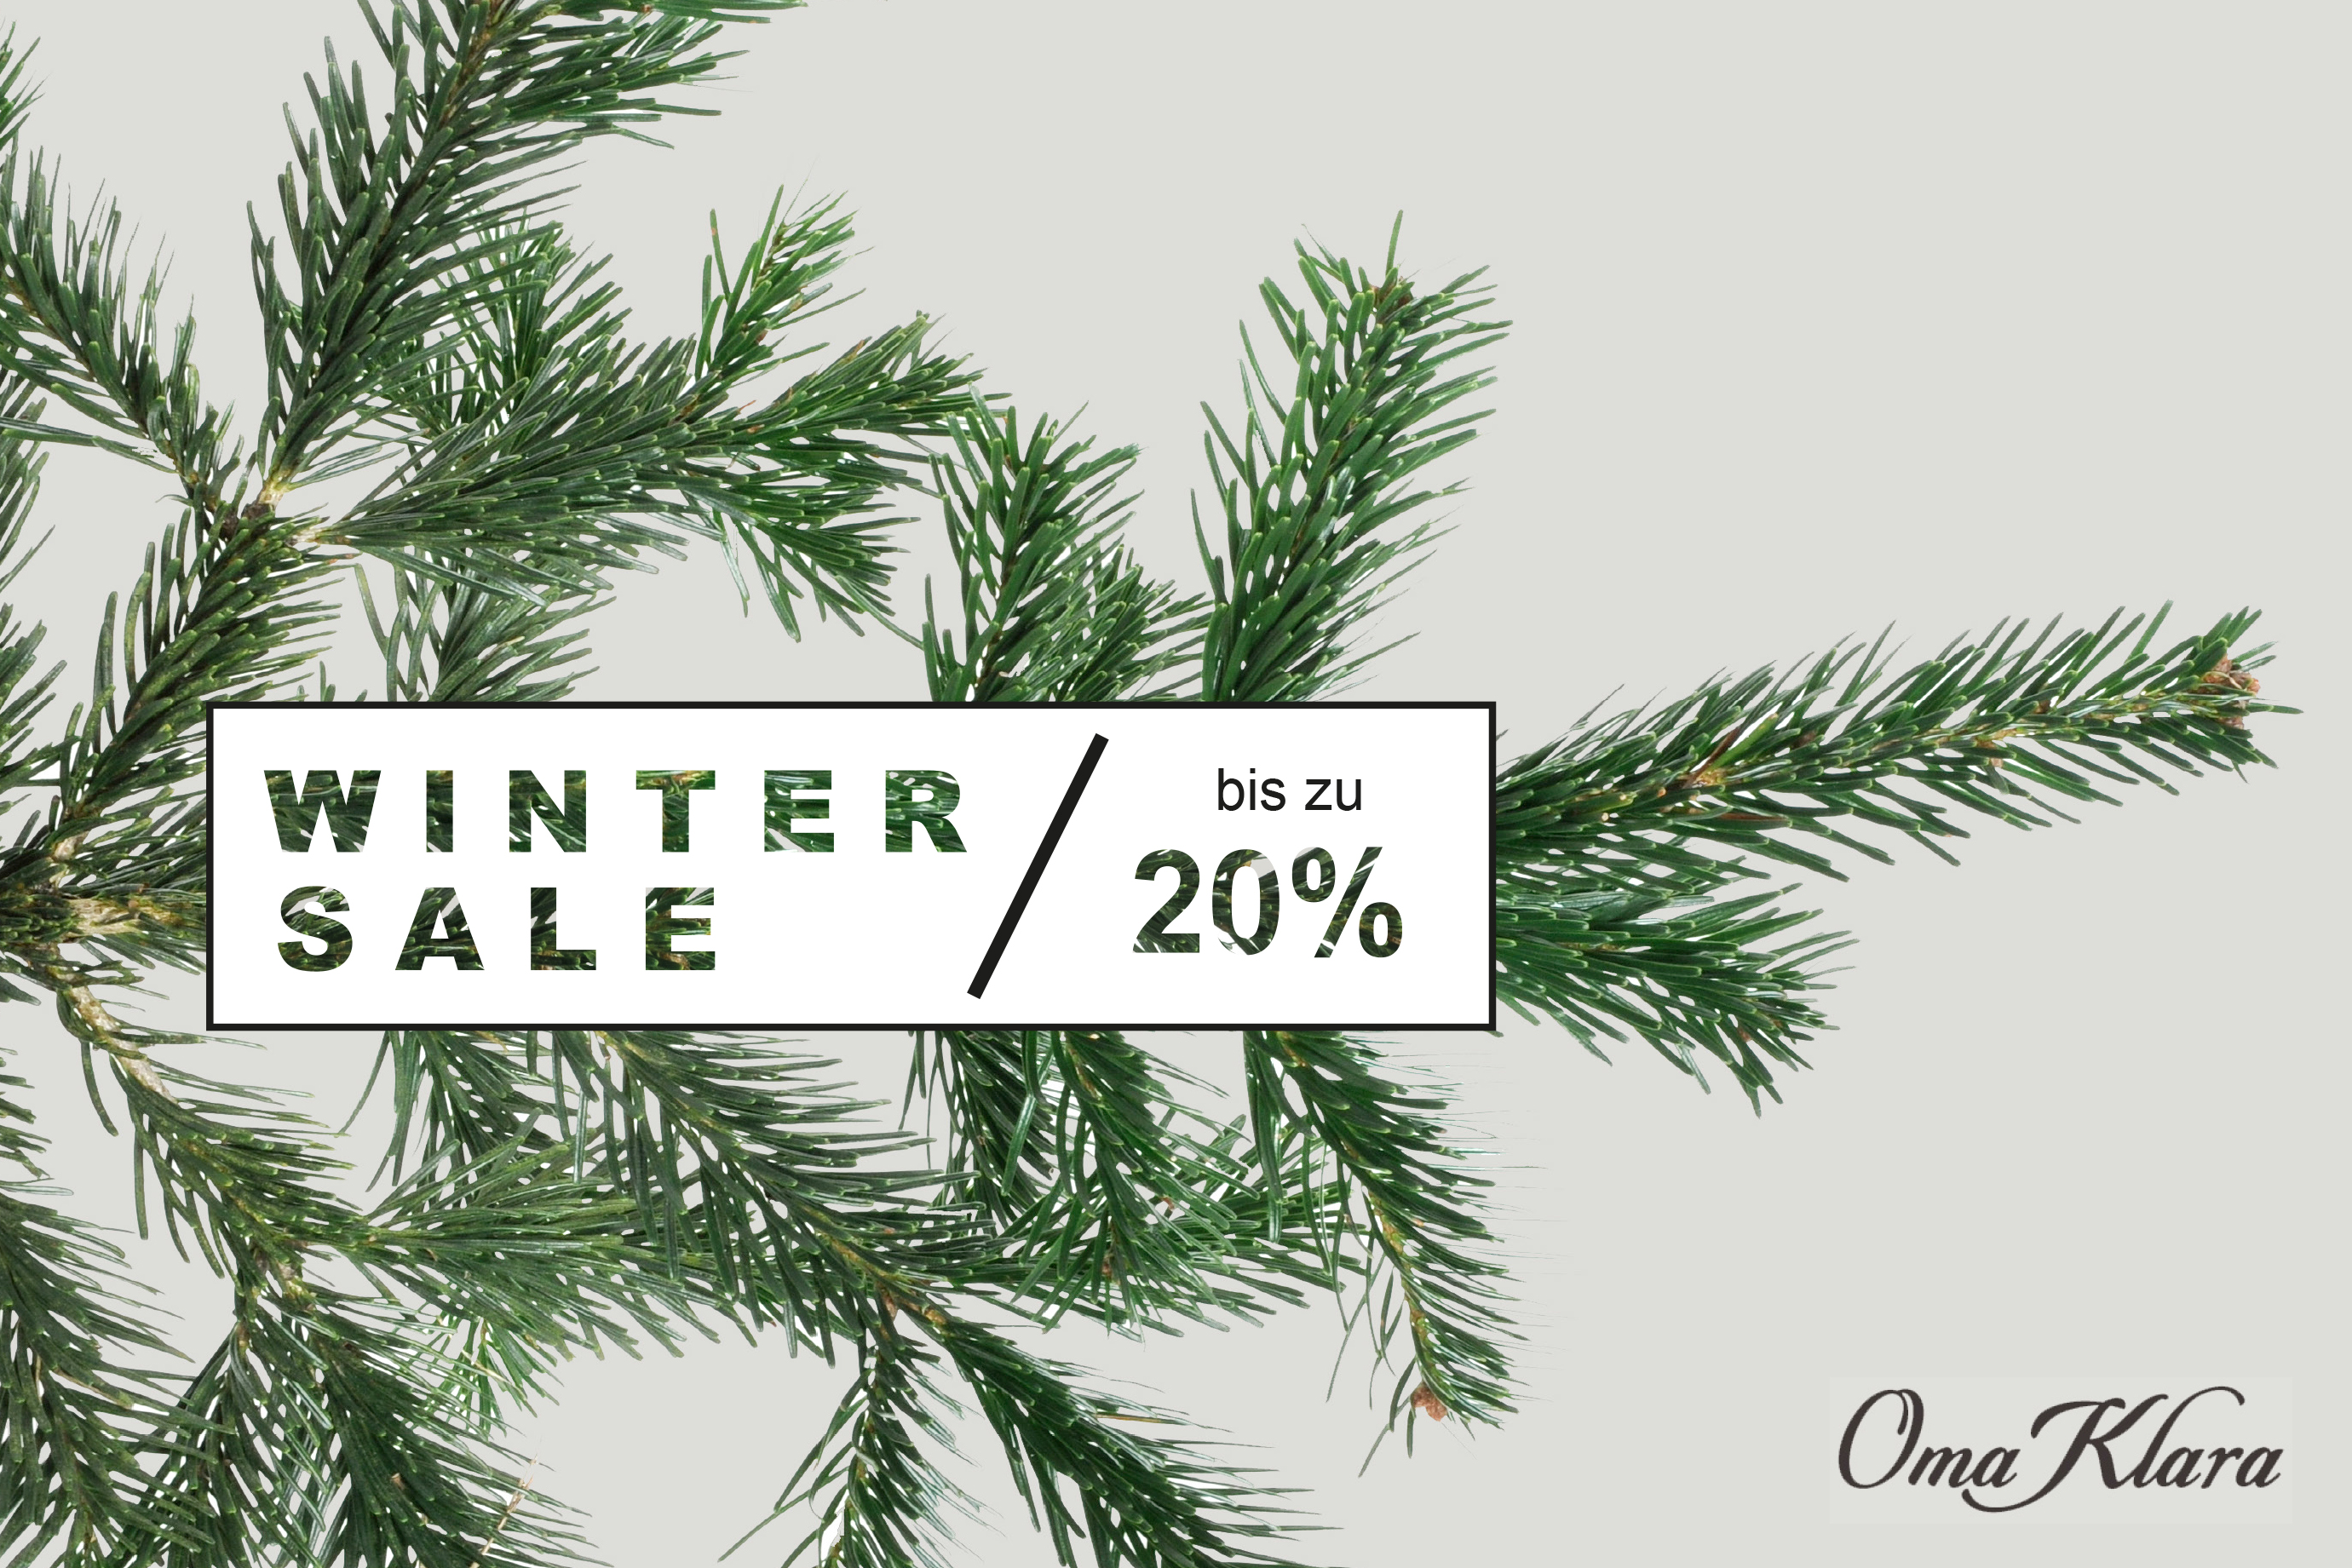 Oma Klara - WINTER SALE